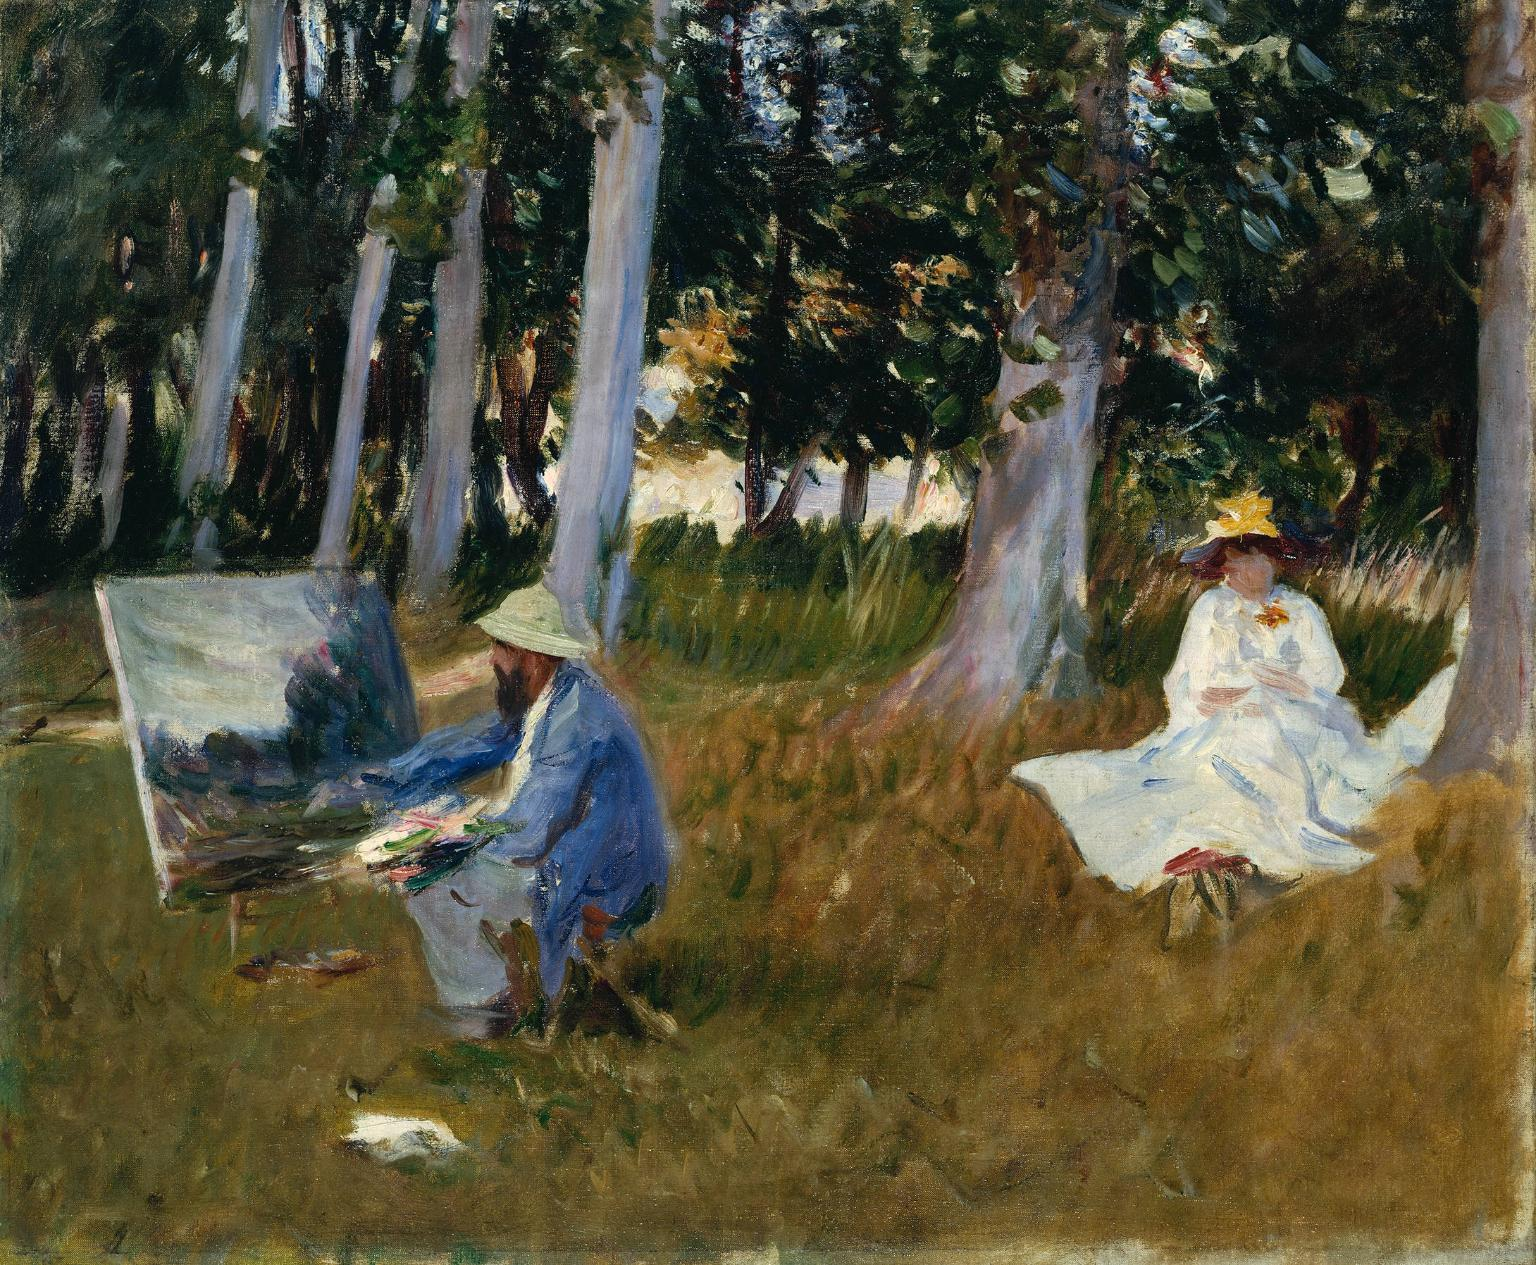 File:Sargent MonetPainting.jpg